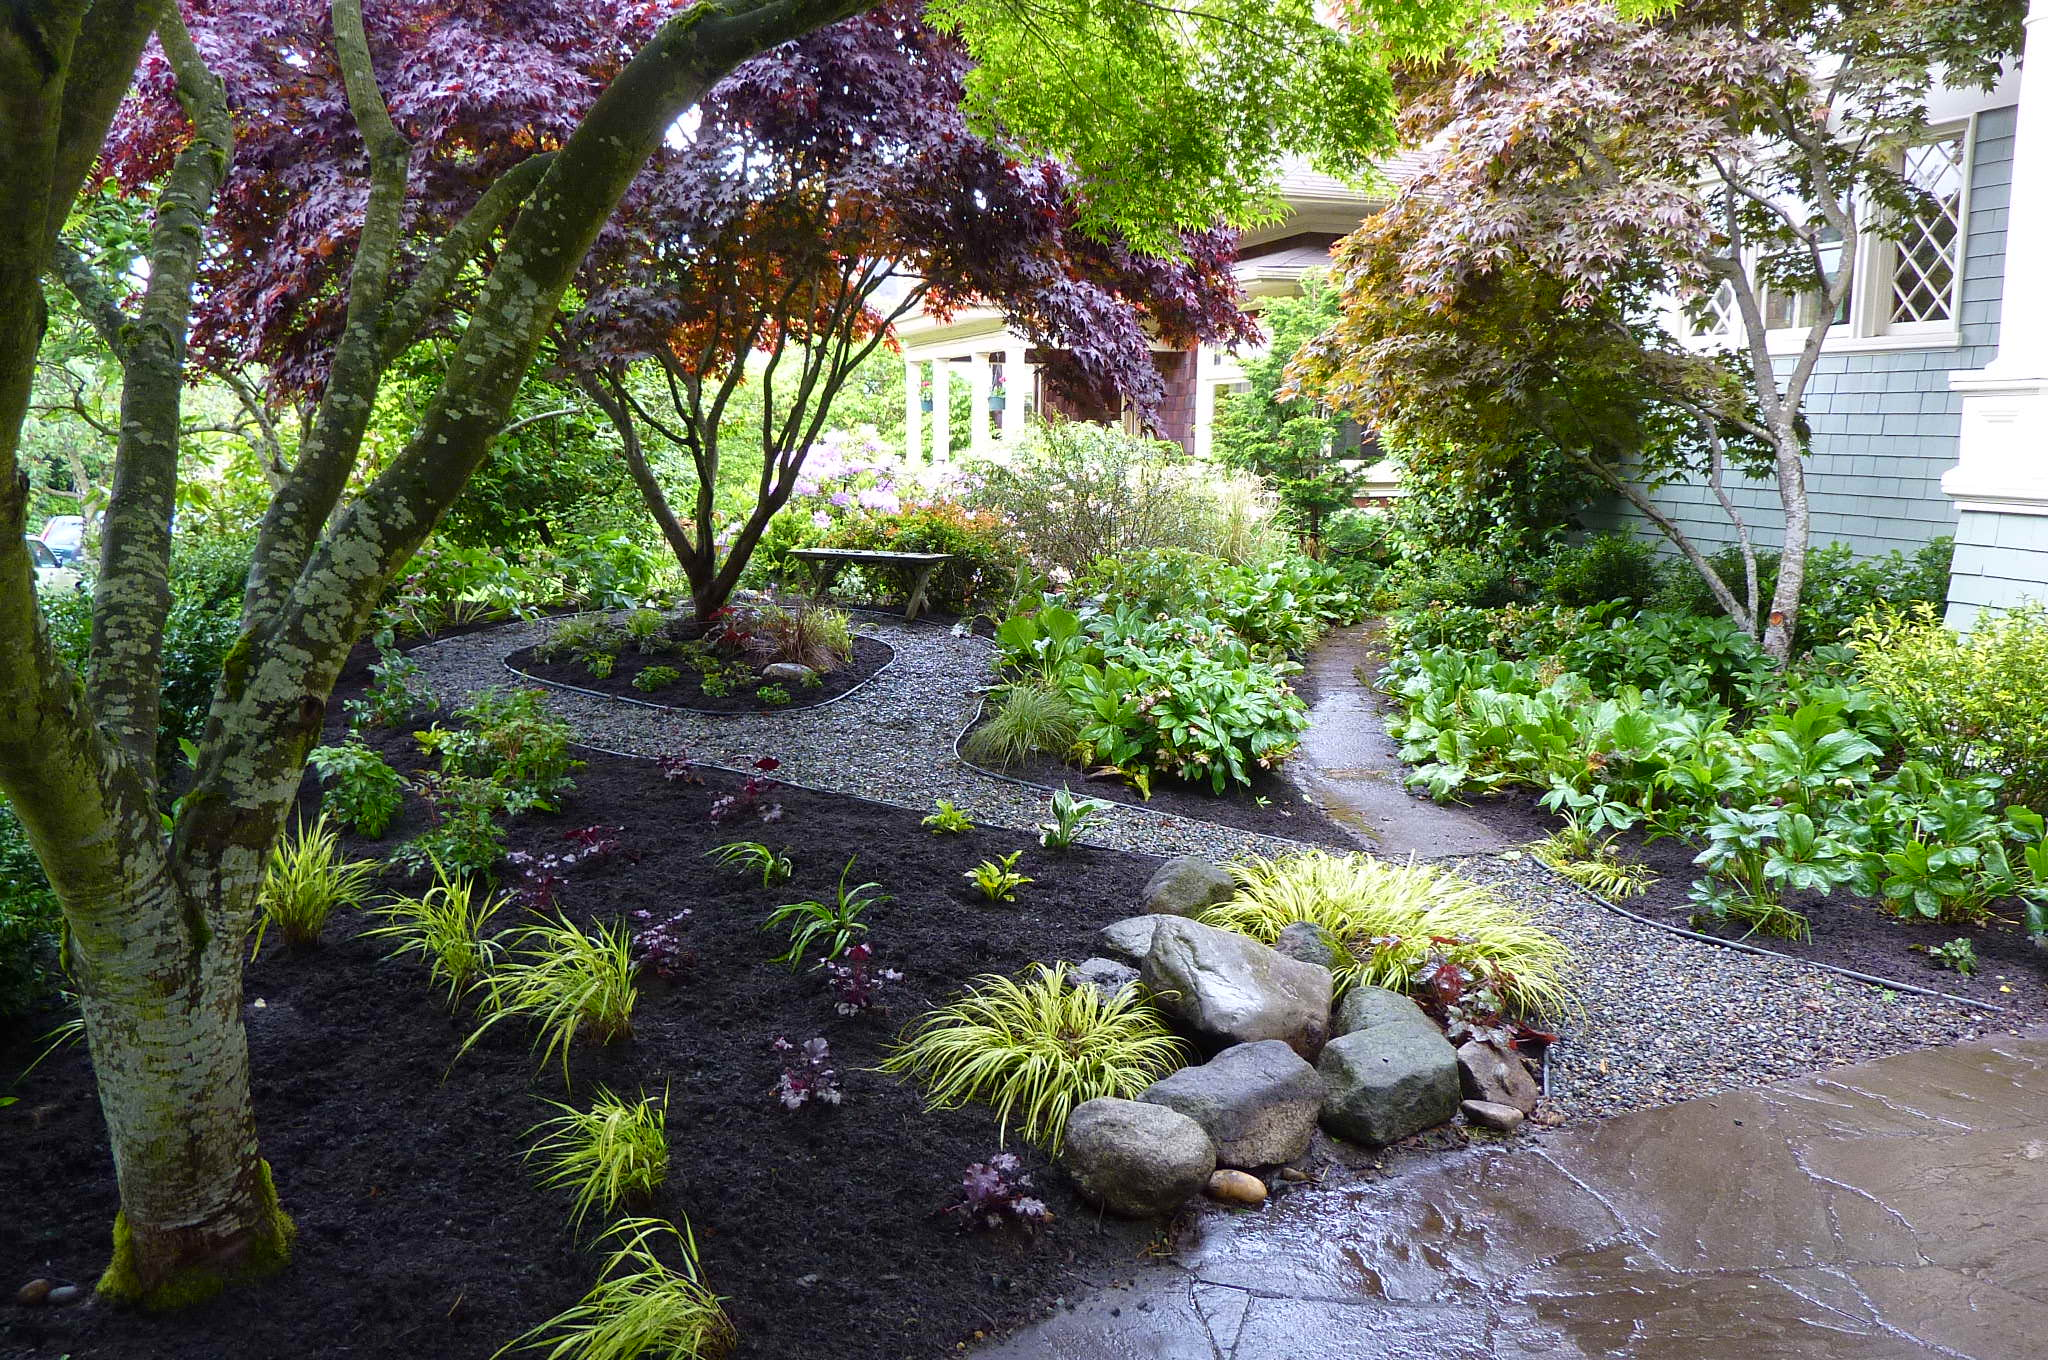 Landscaping Companies Near Me | Local Lawn Services Des Moines on Backyard Landscaping Companies Near Me id=76825